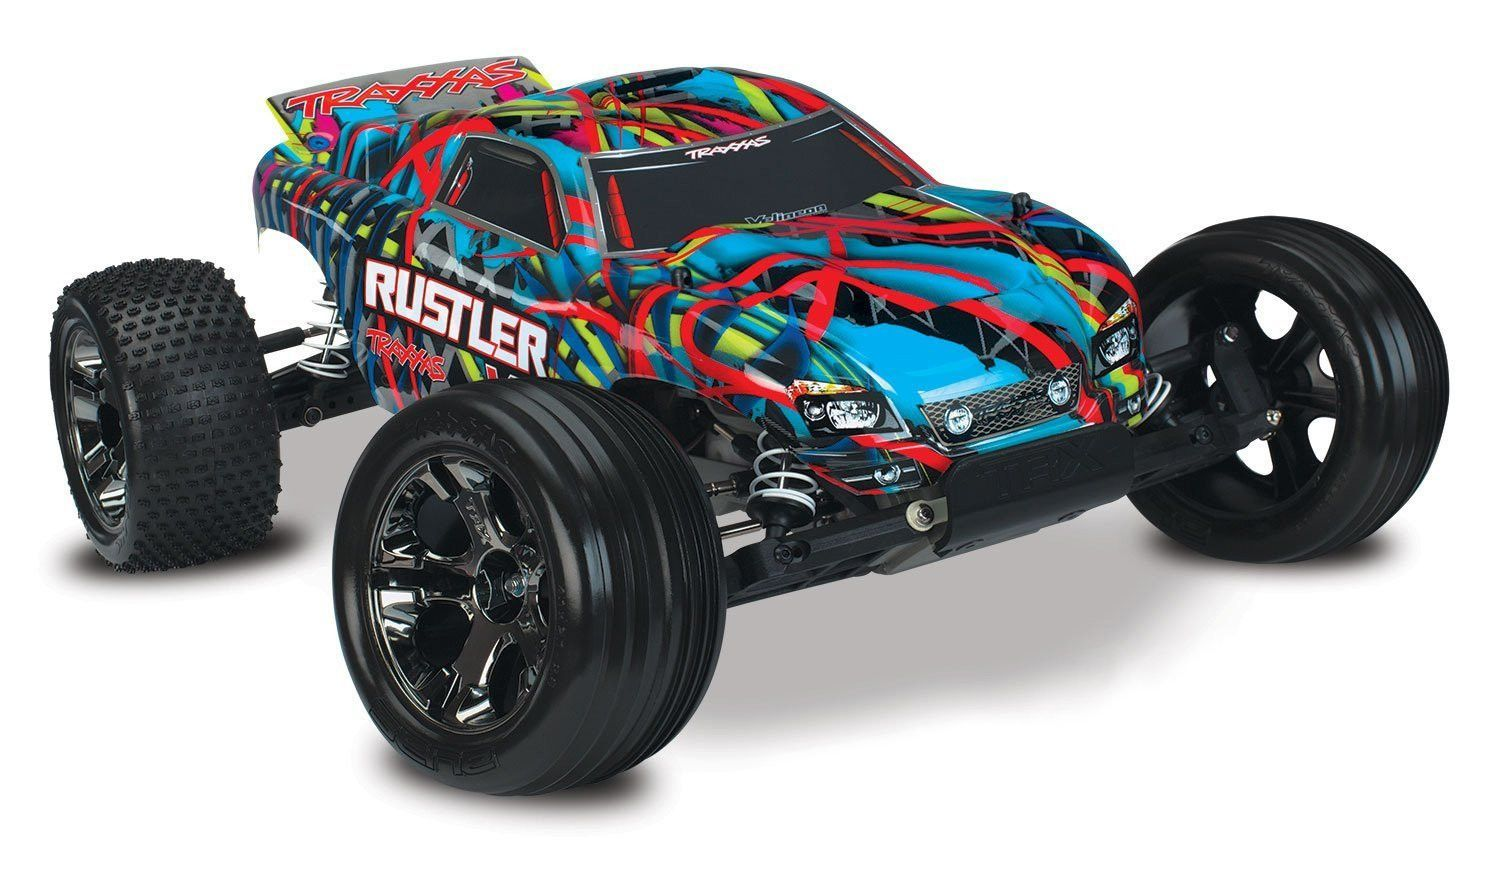 There are many reasons the Traxxas Rustler VXL is the best selling